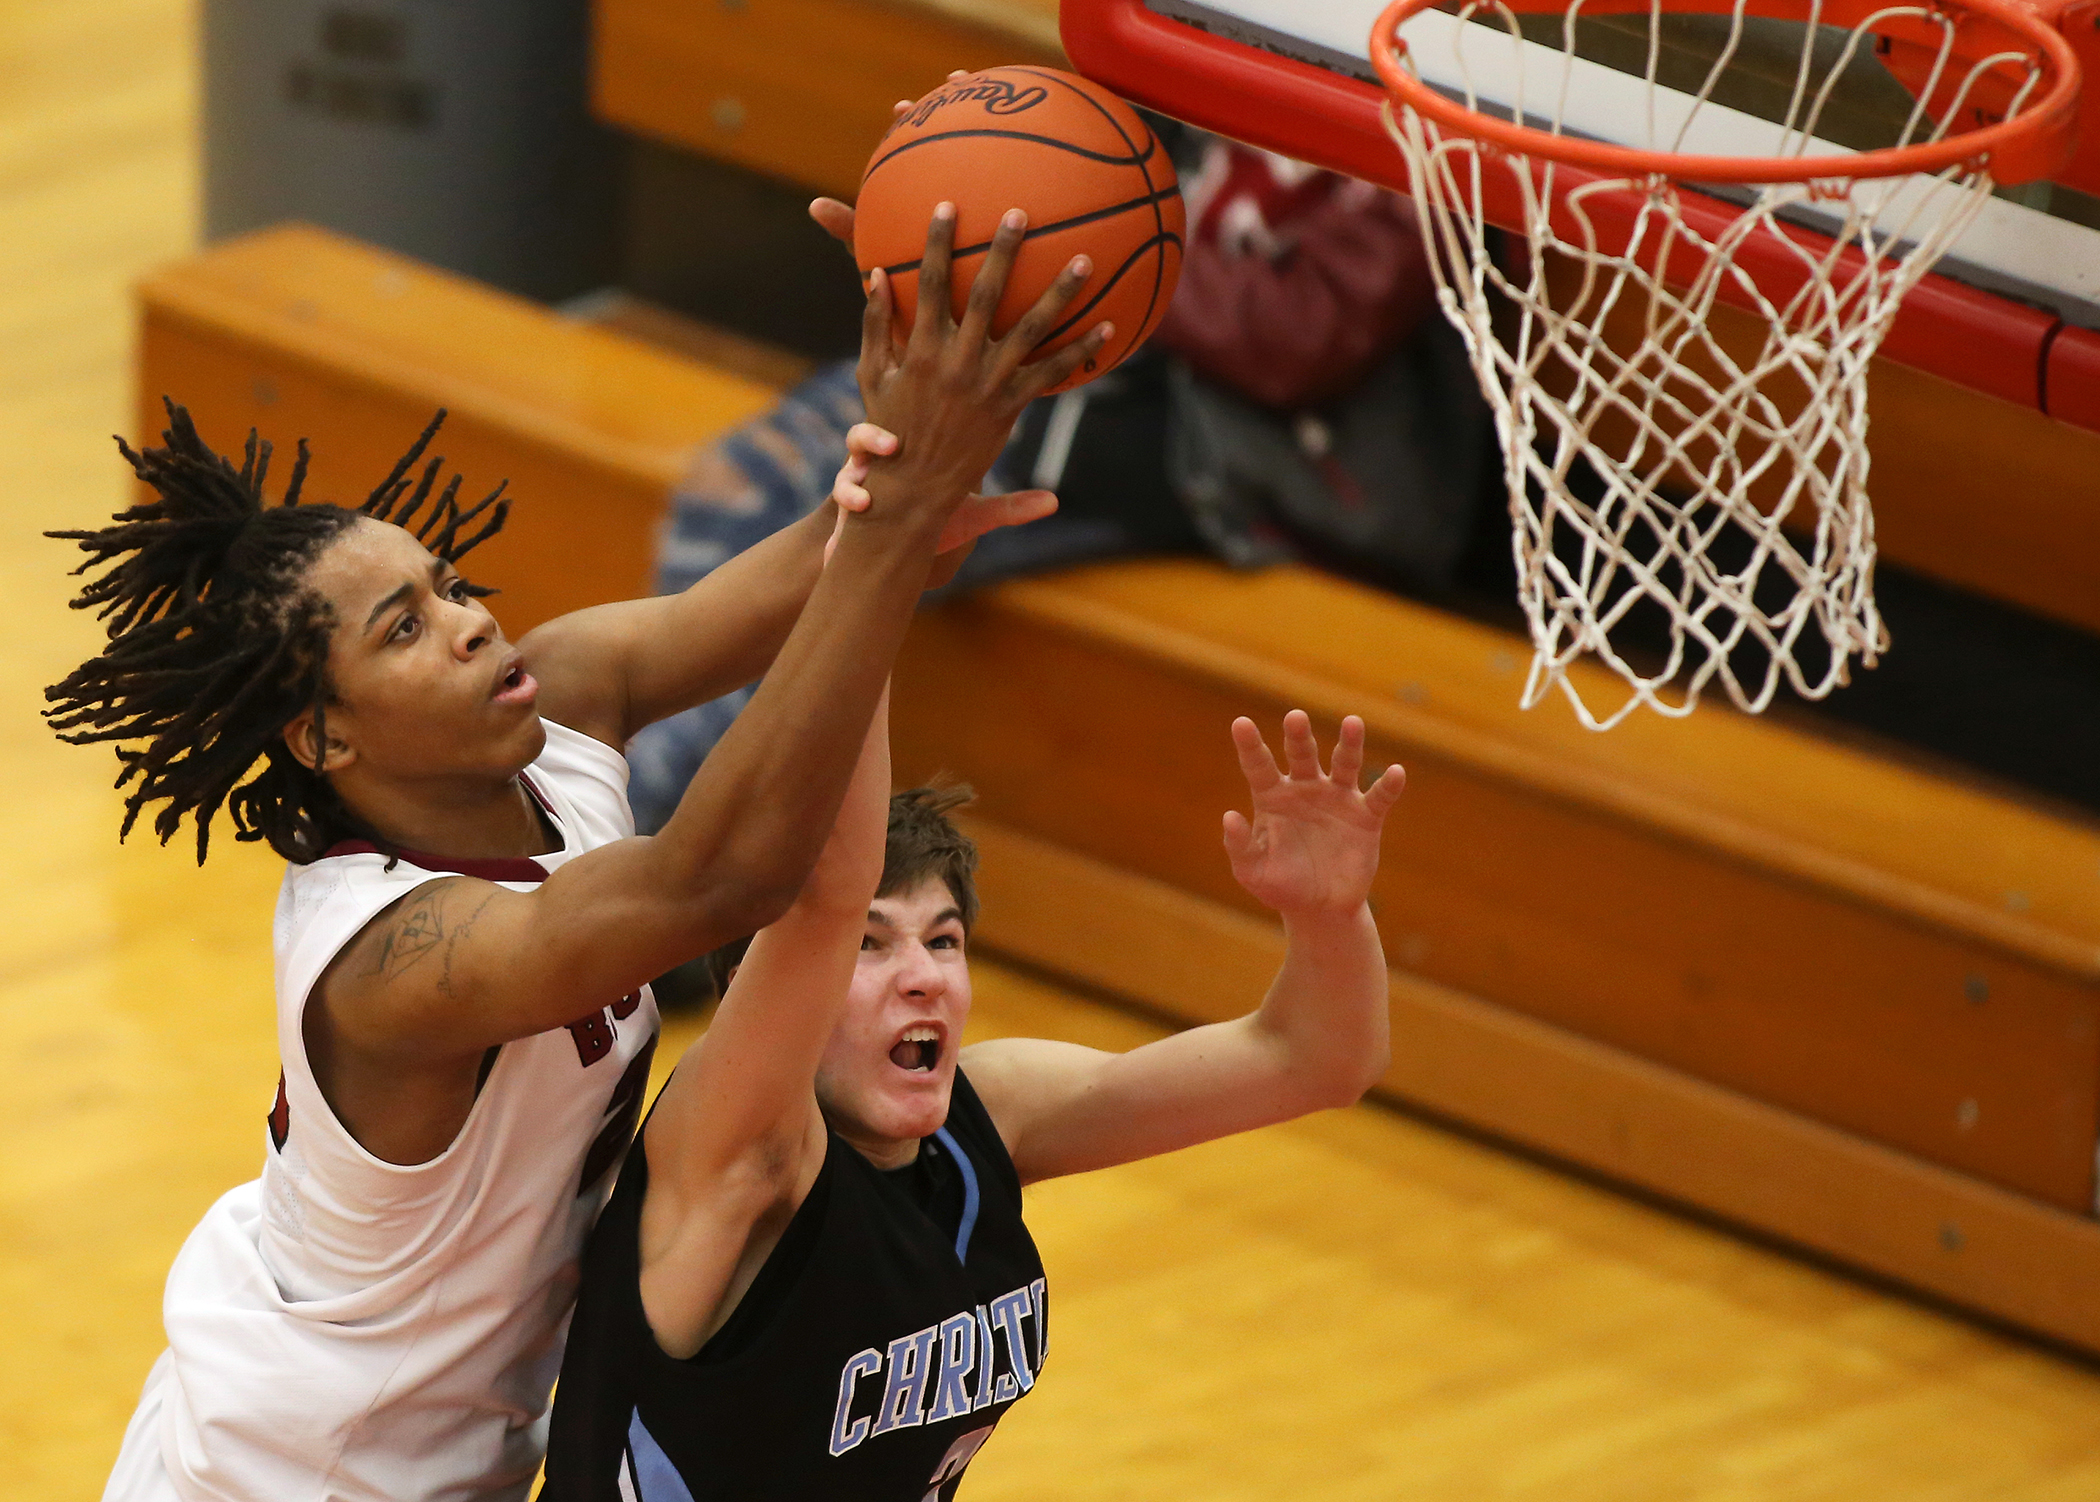 Deyonta Davis of Muskegon goes up to catch a pass against defender Emmett Warners of Christian in the third quarter of their game at Muskegon High School Tuesday, Jan. 20, 2015. Muskegon won 65-54.